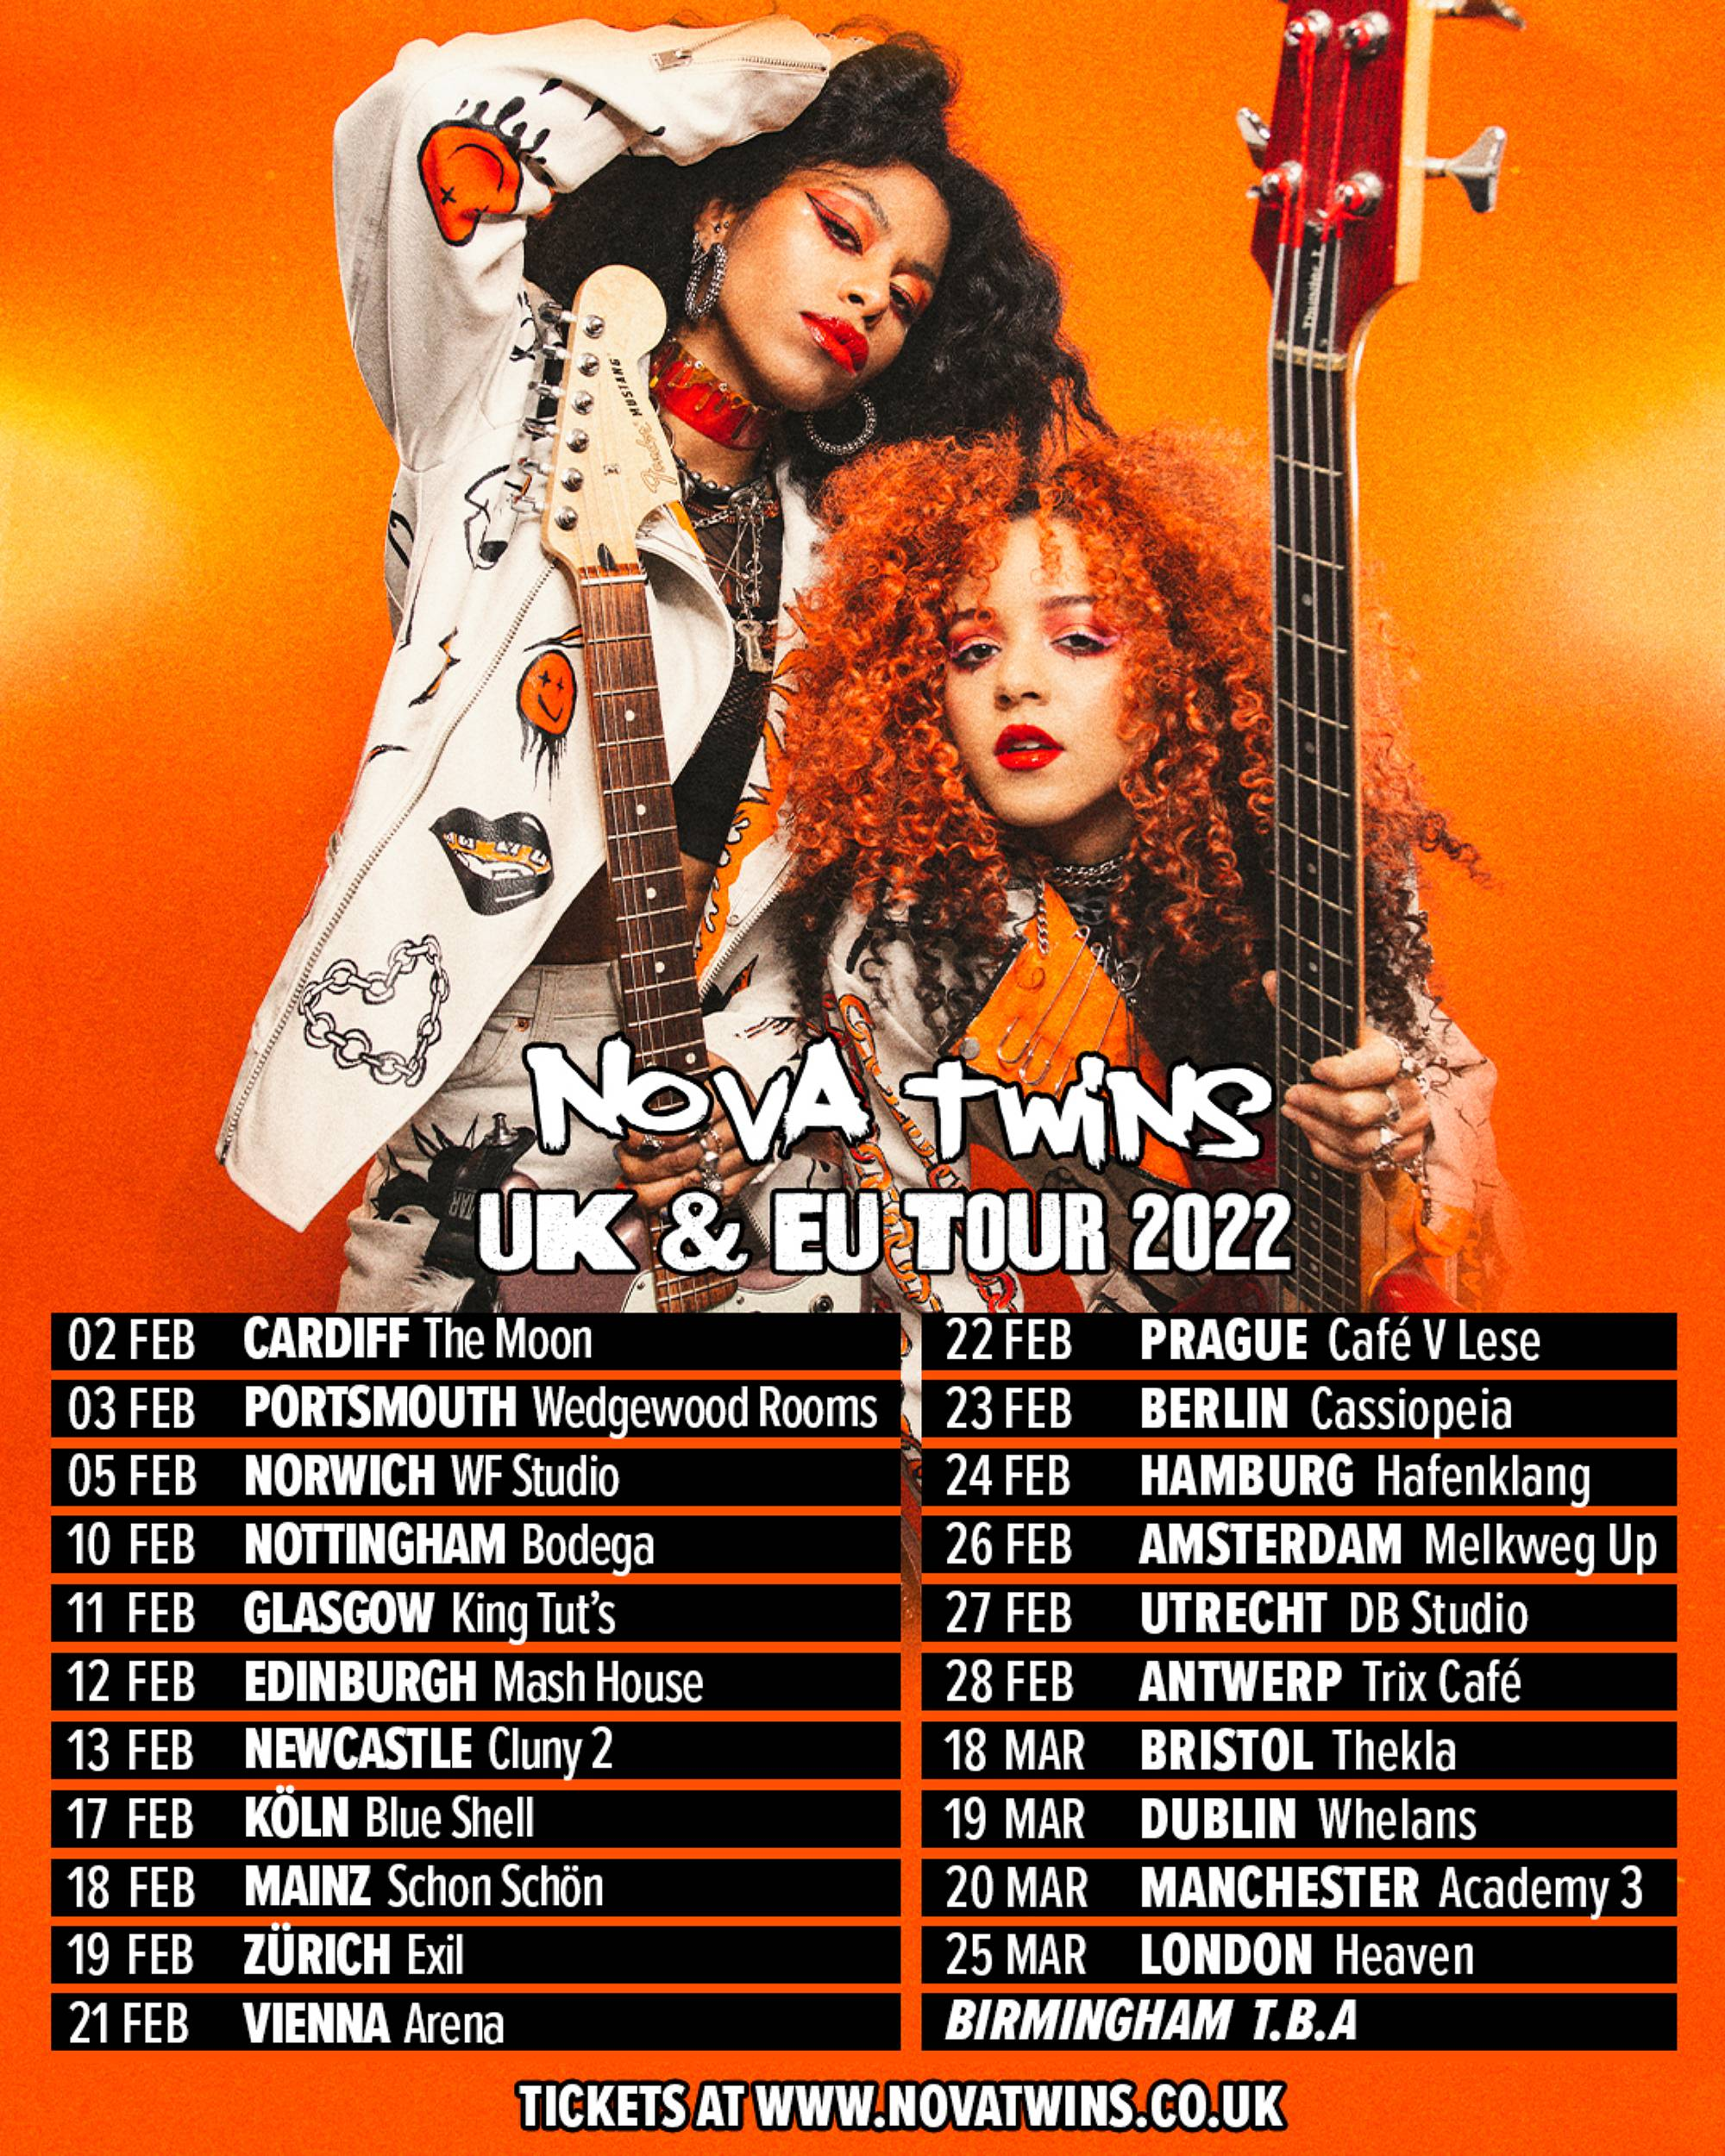 Nova Twins have announced details of a 2022 UK and European tour